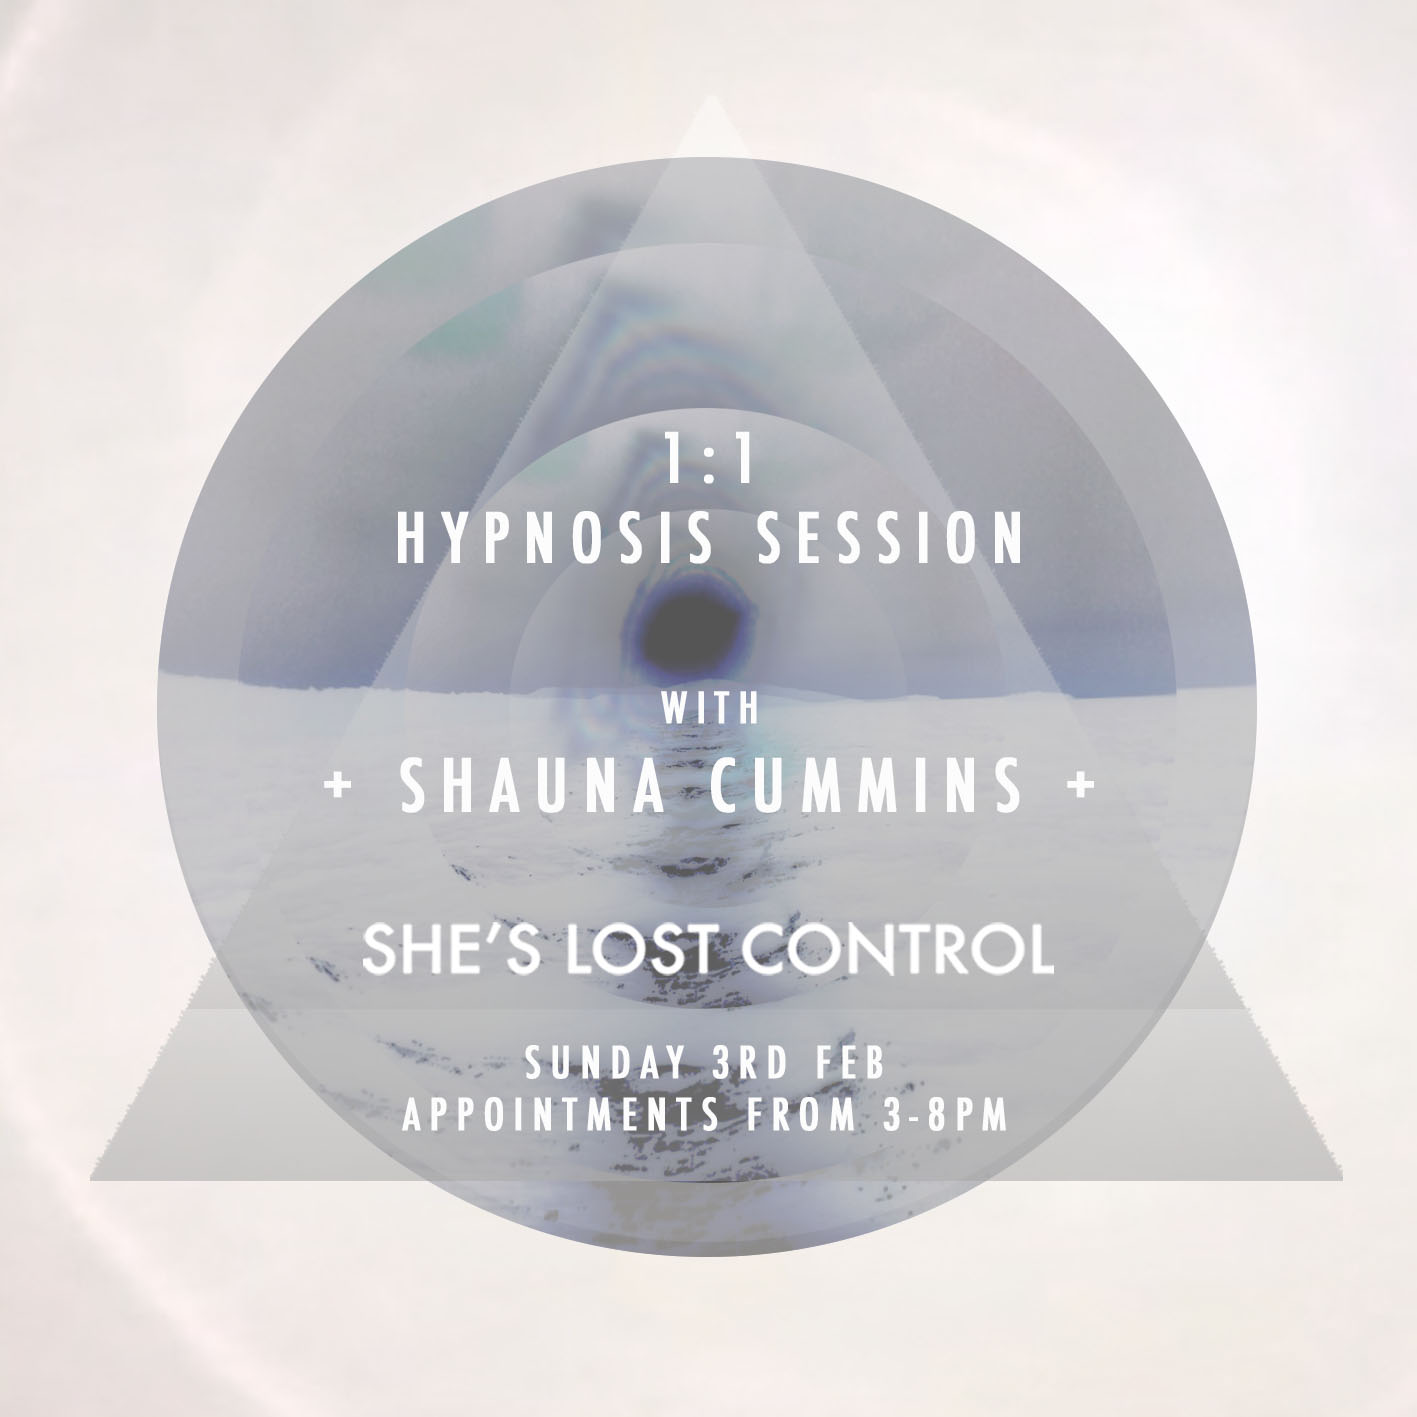 1-1 Hypnosis Session dates.jpg